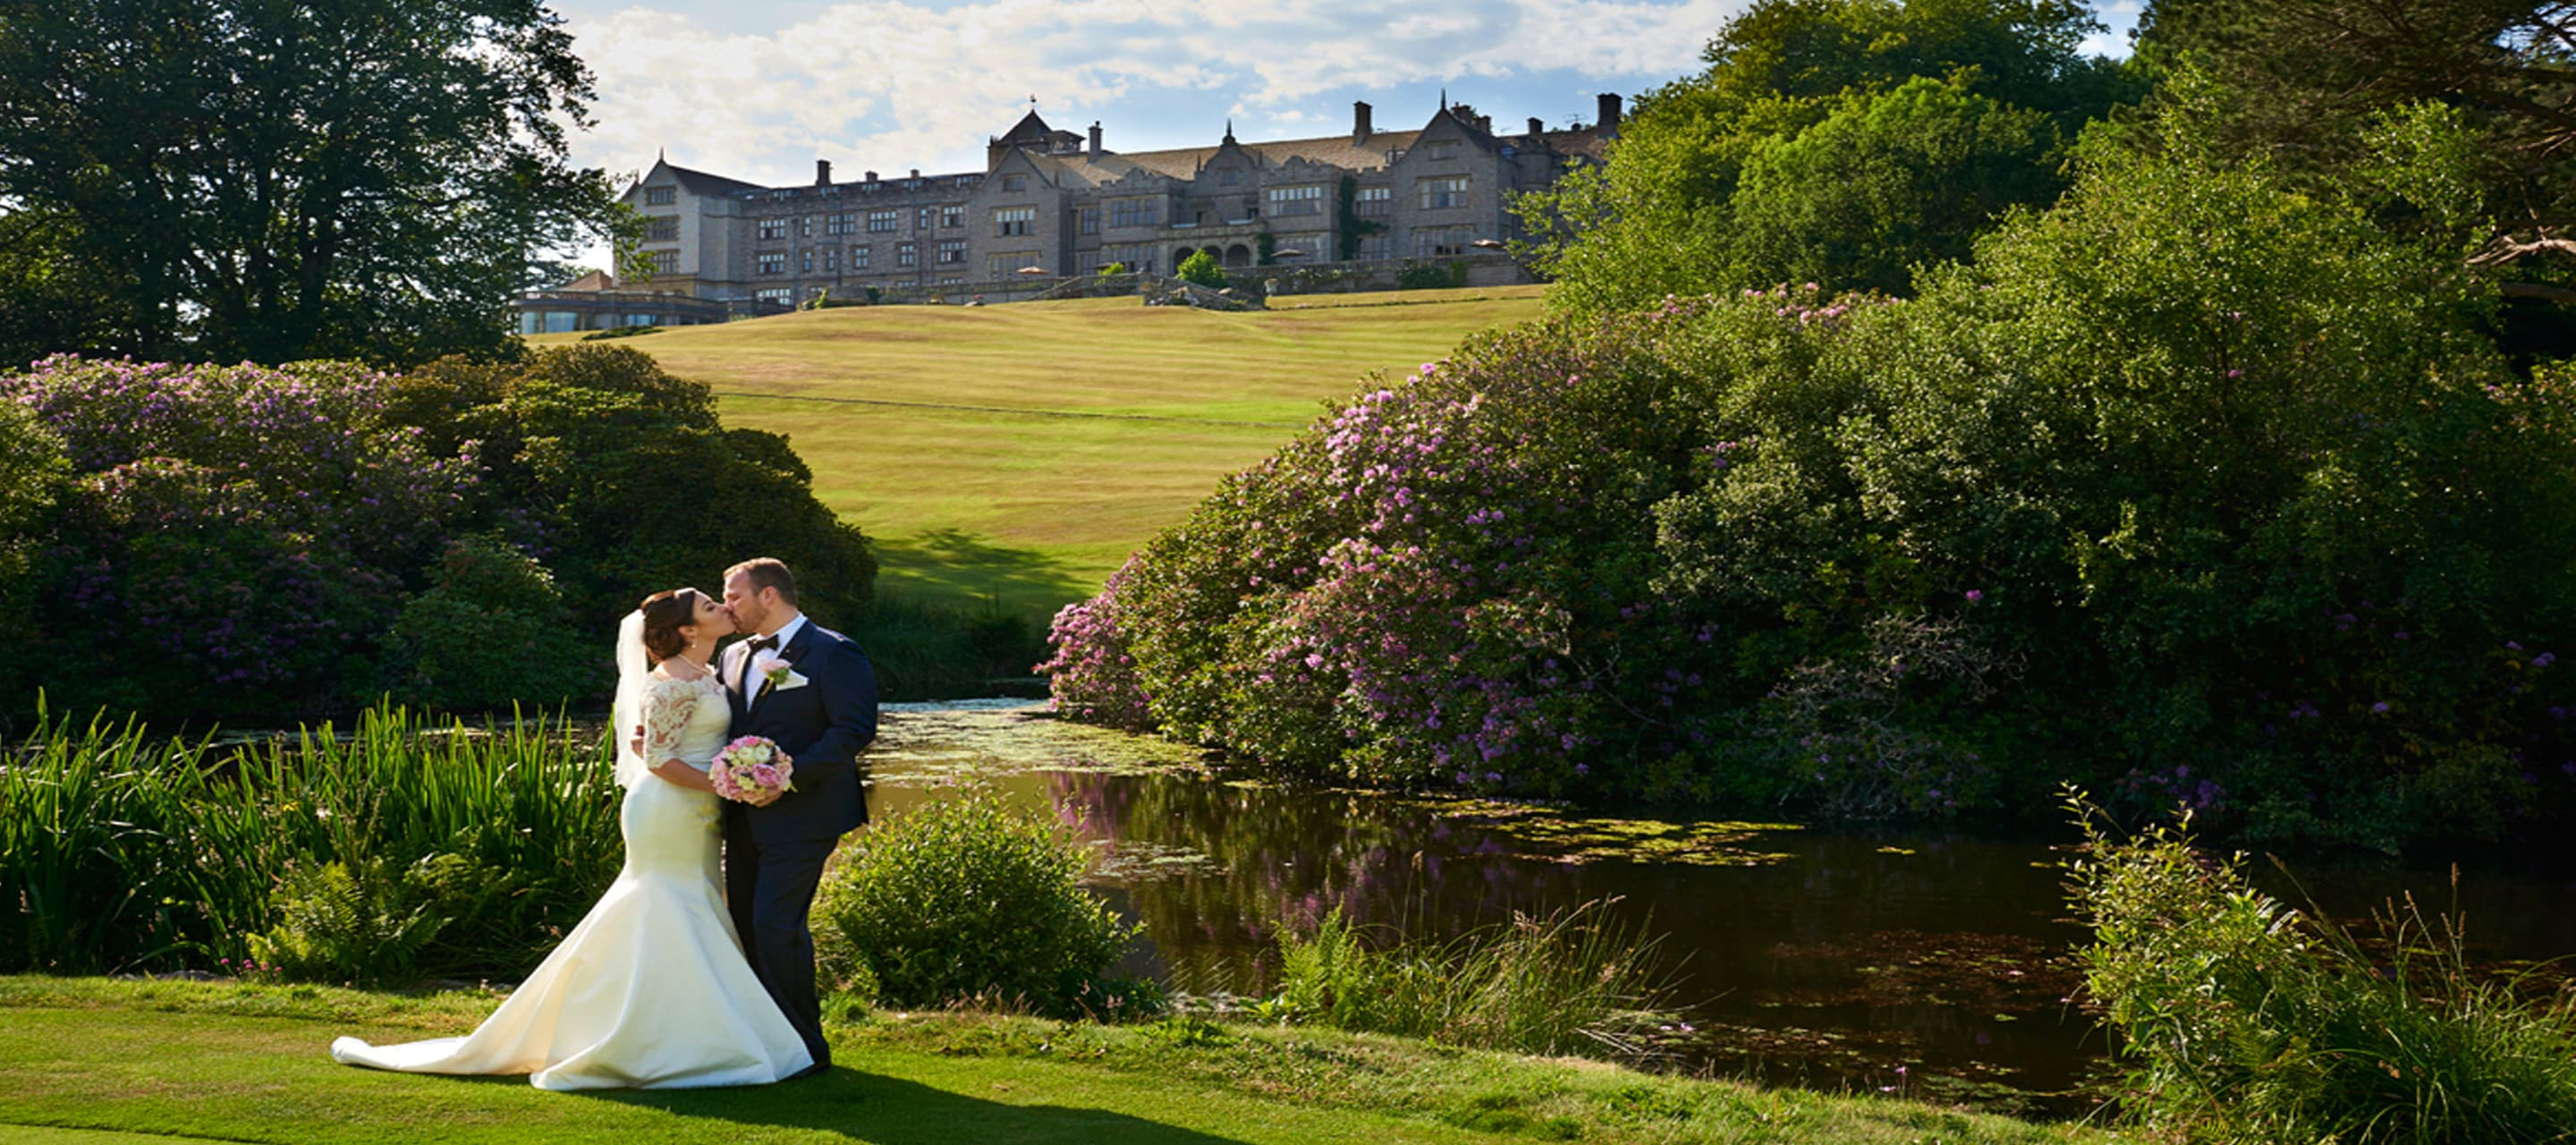 Lov Hotel Collection Wonderful English Weddings Eden Hotel Collection Group